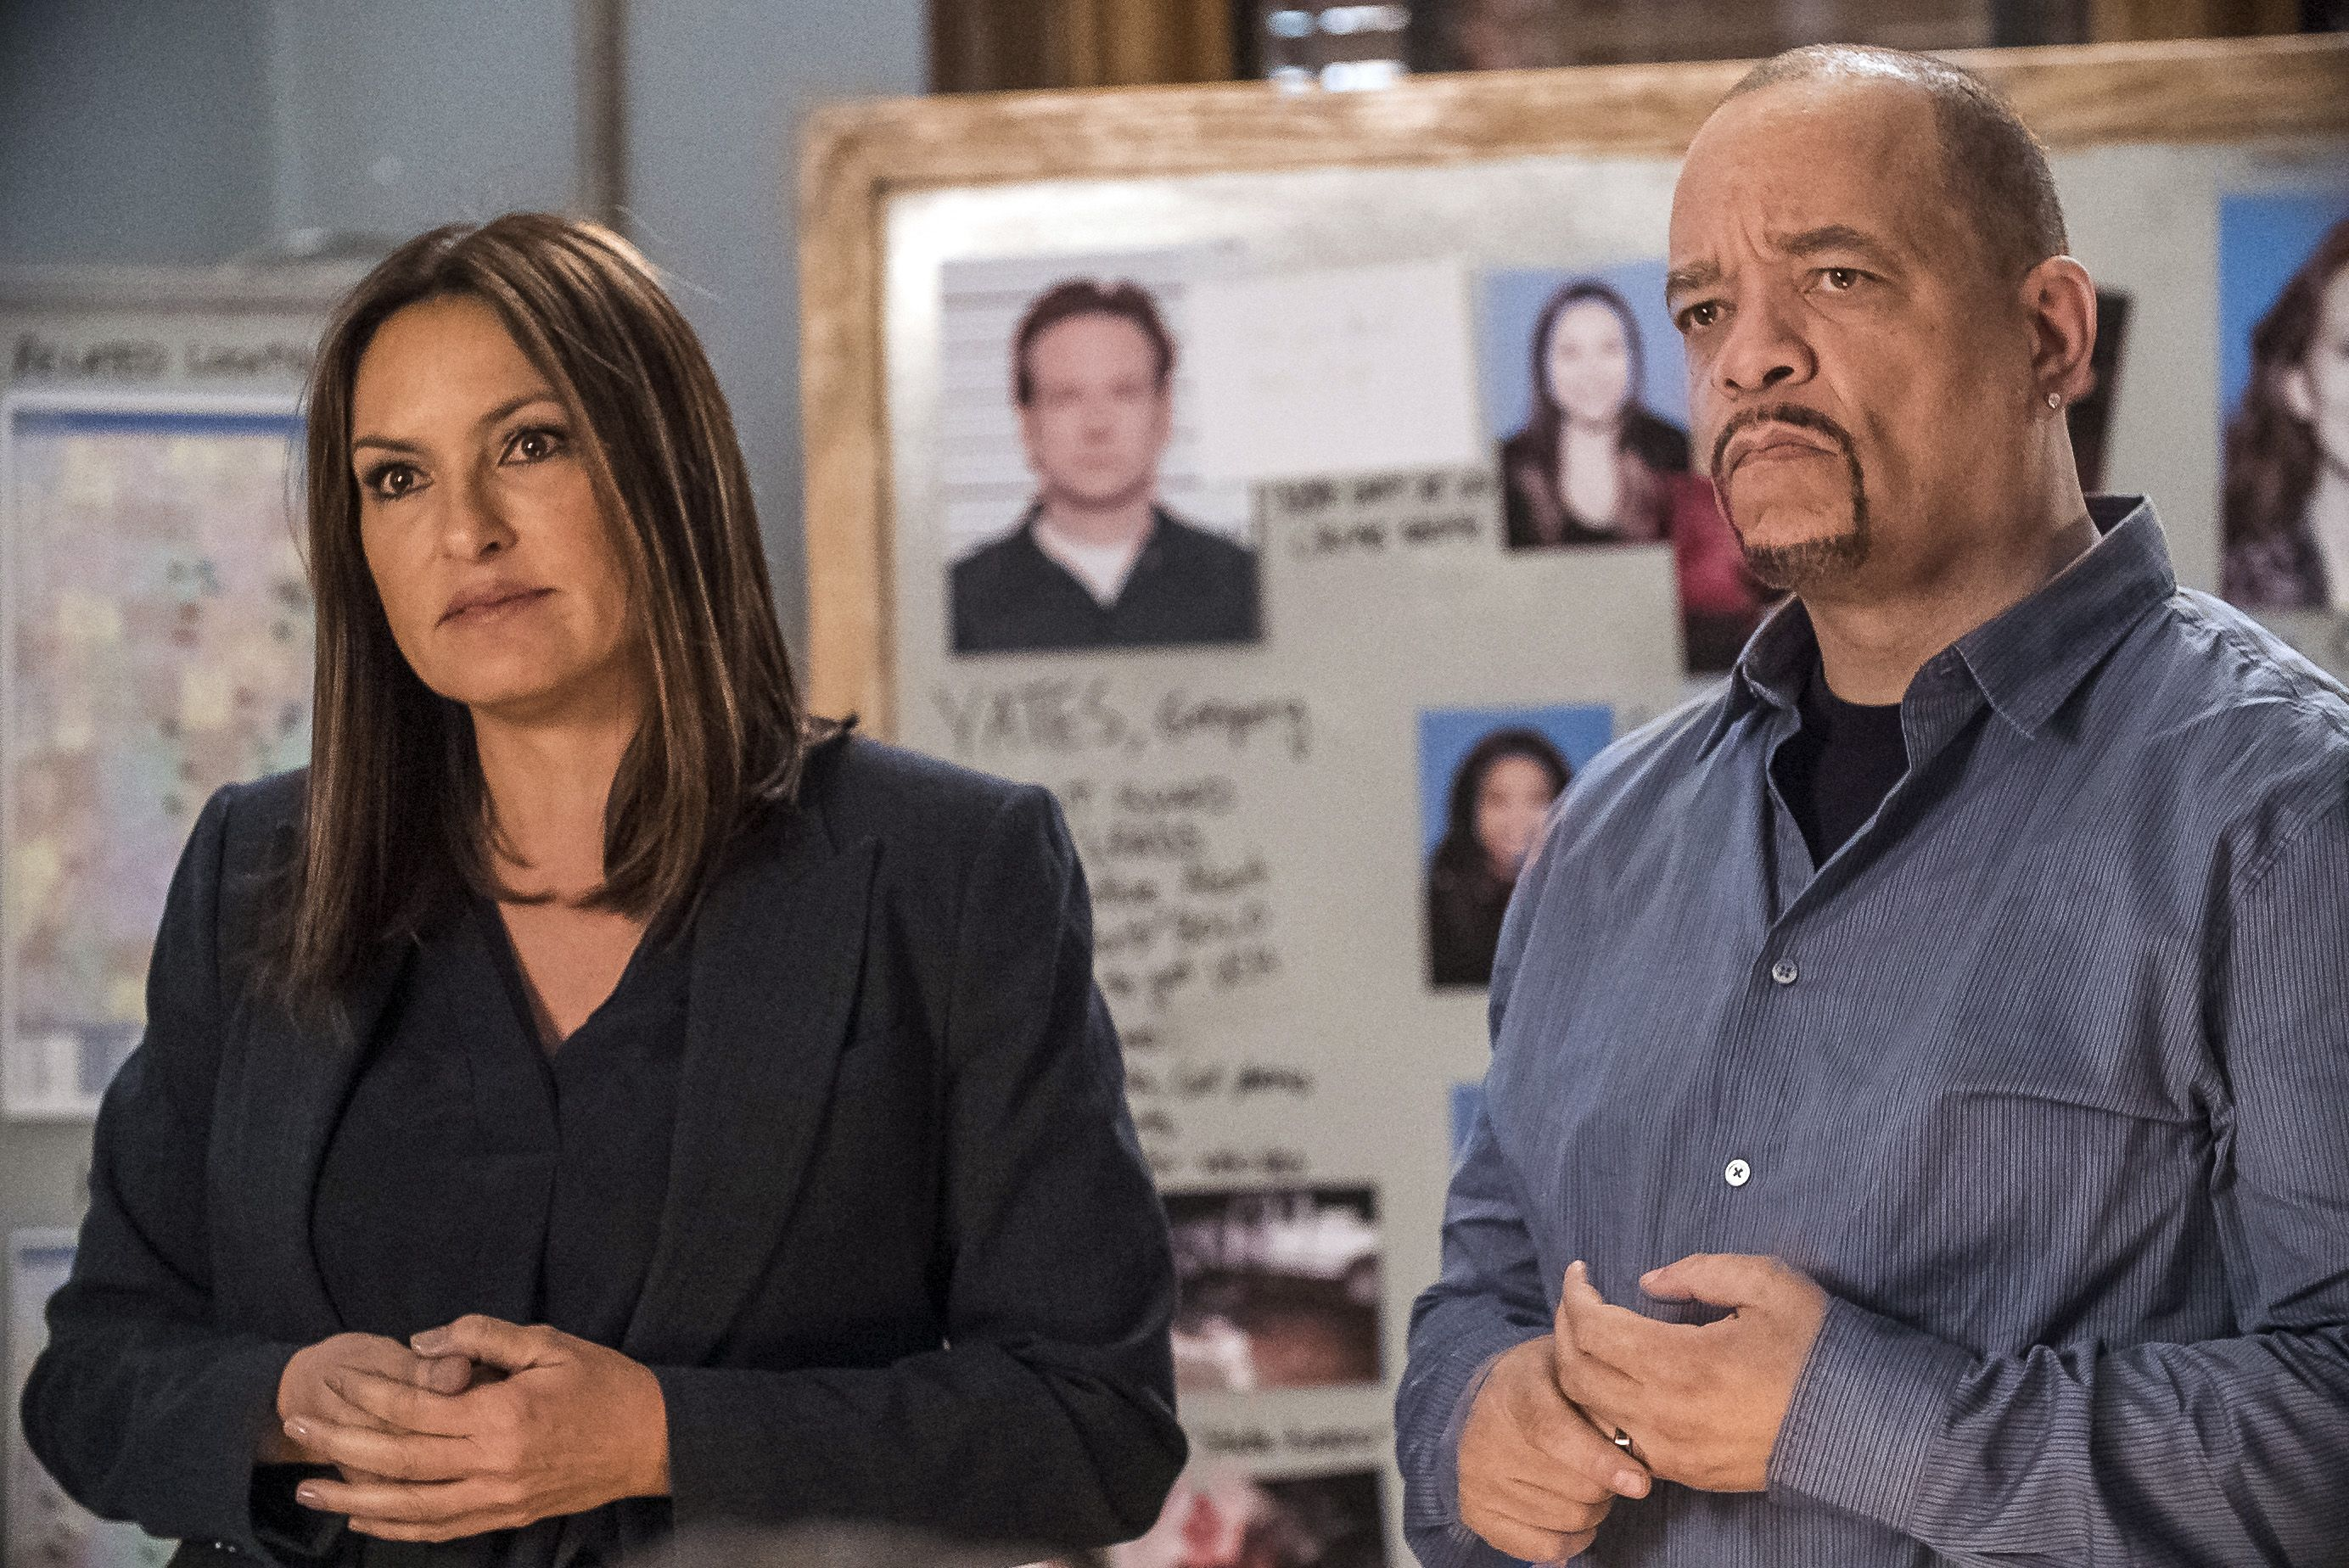 A Southern Version of 'Law & Order: SVU' Exists and It Will Leave You Speechless